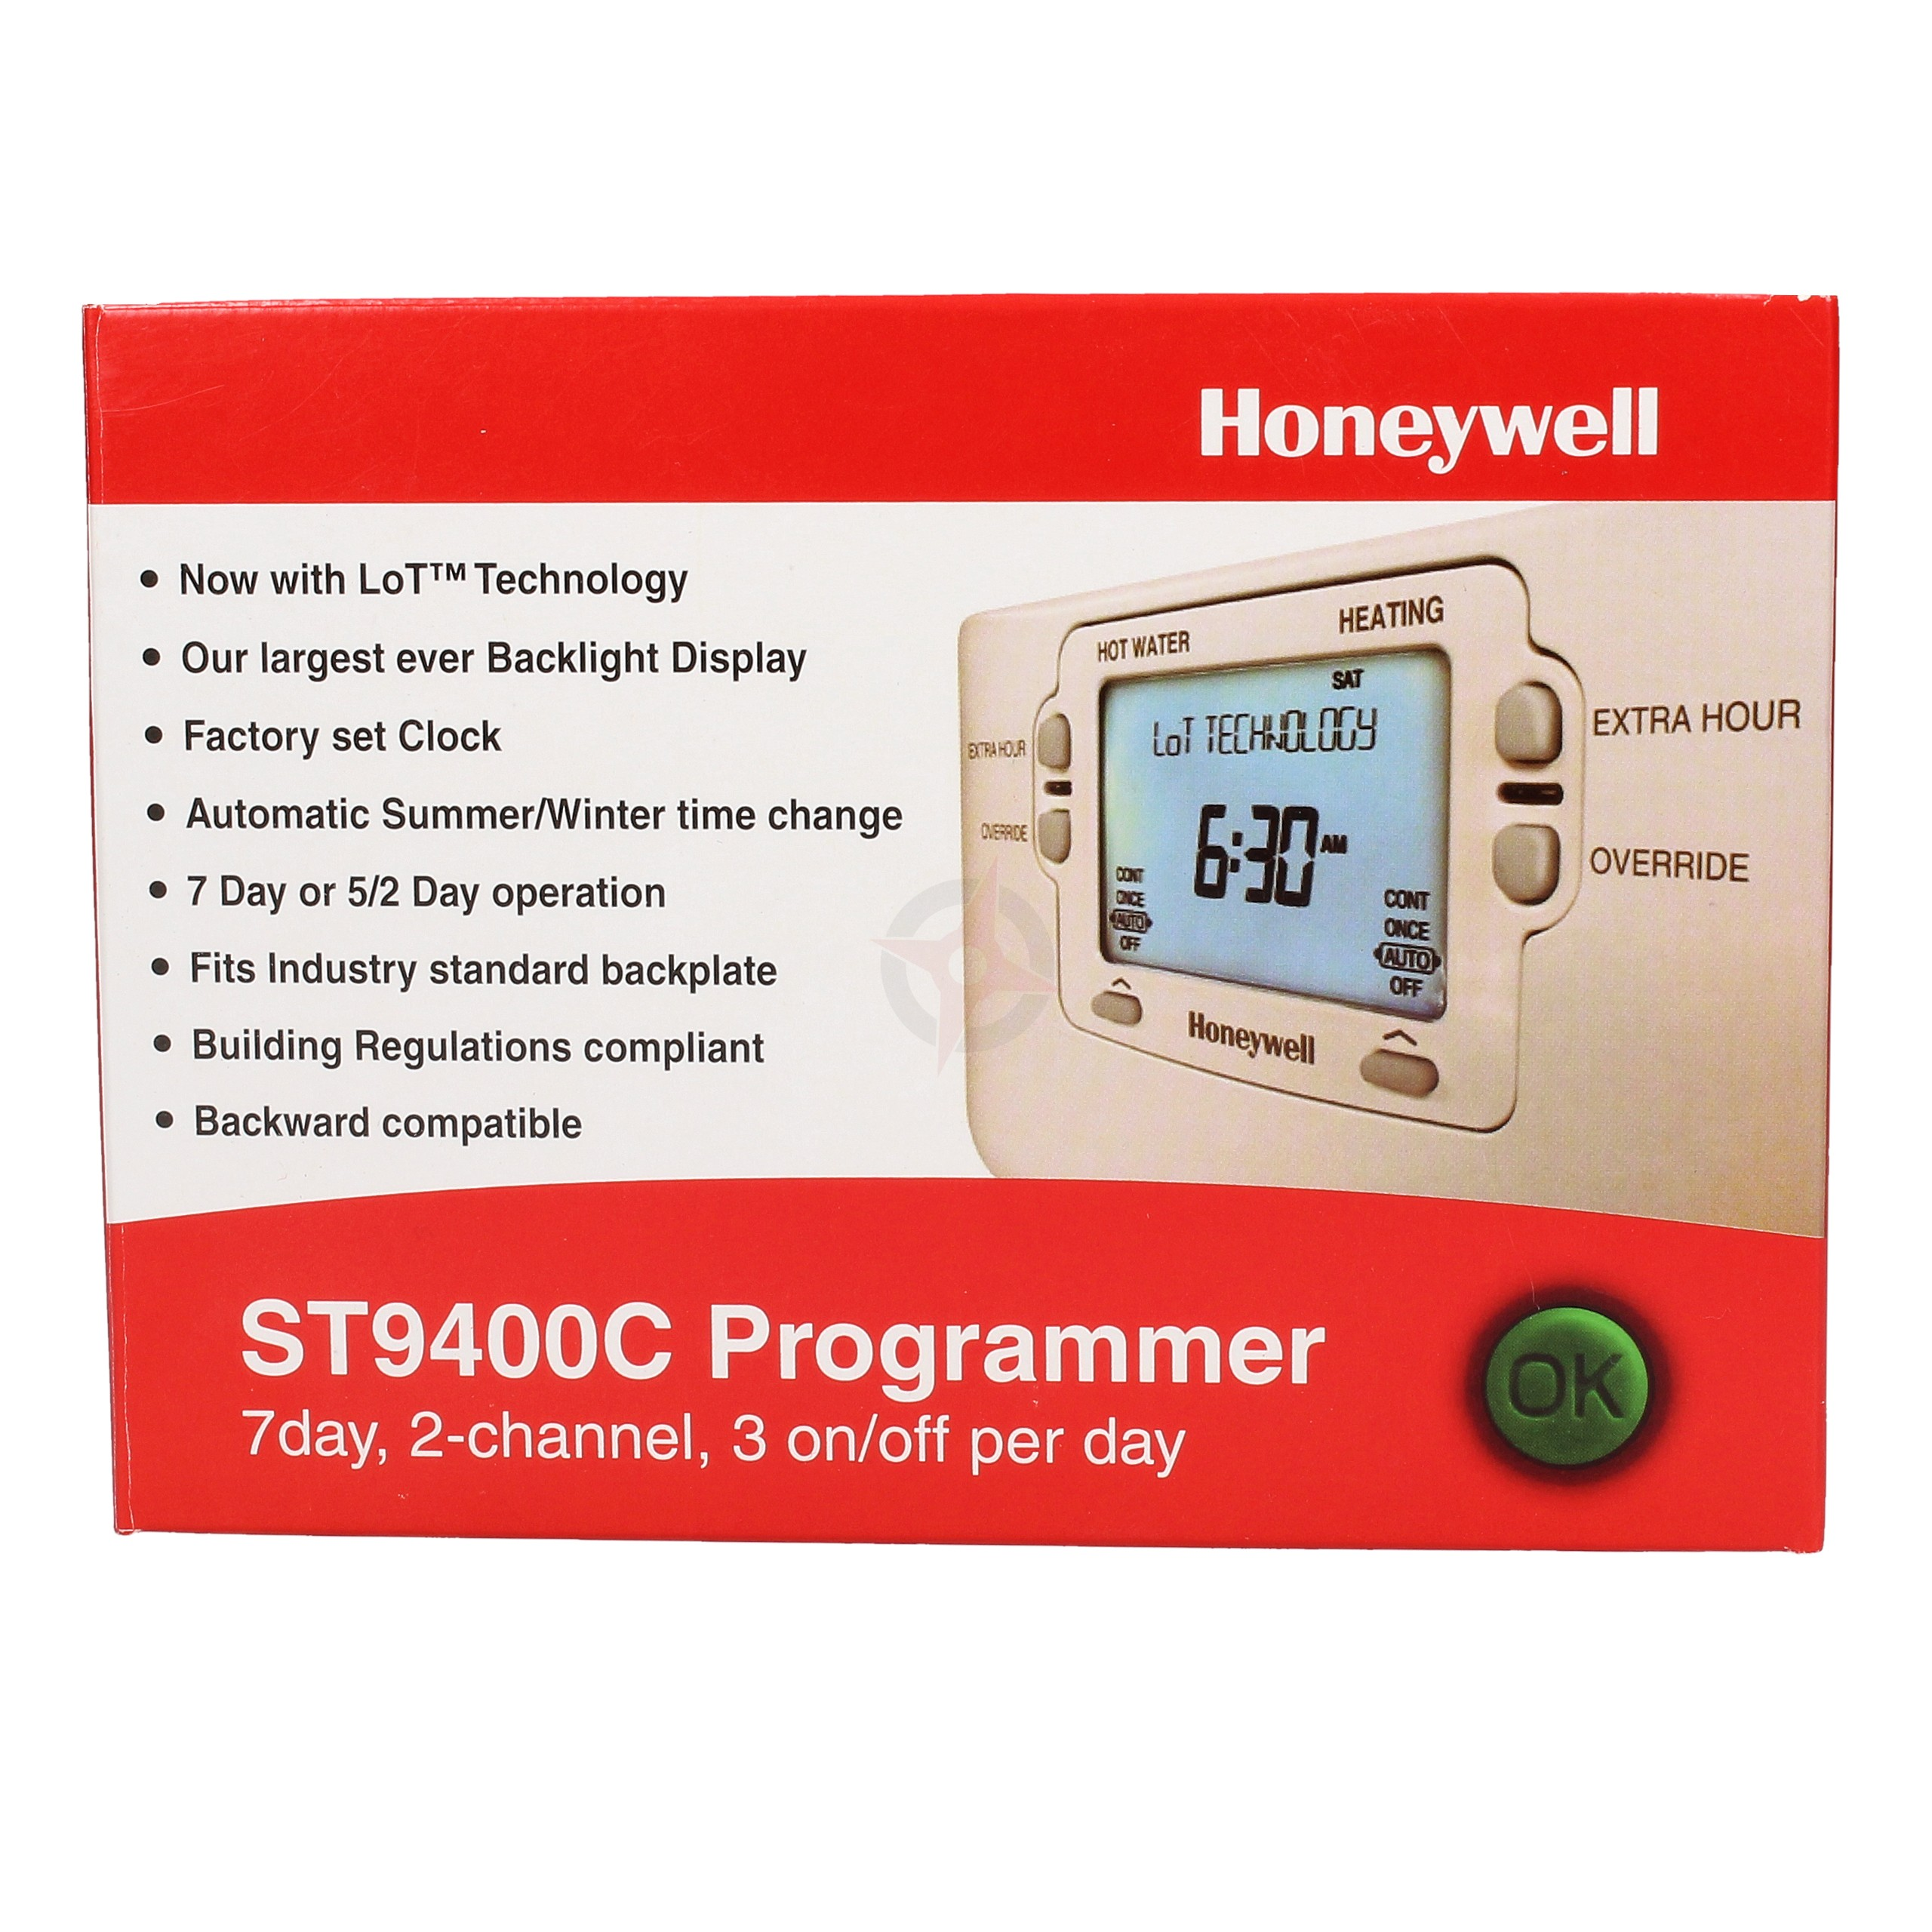 Honeywell 7 Day 2 Channel Programmer ST9400C